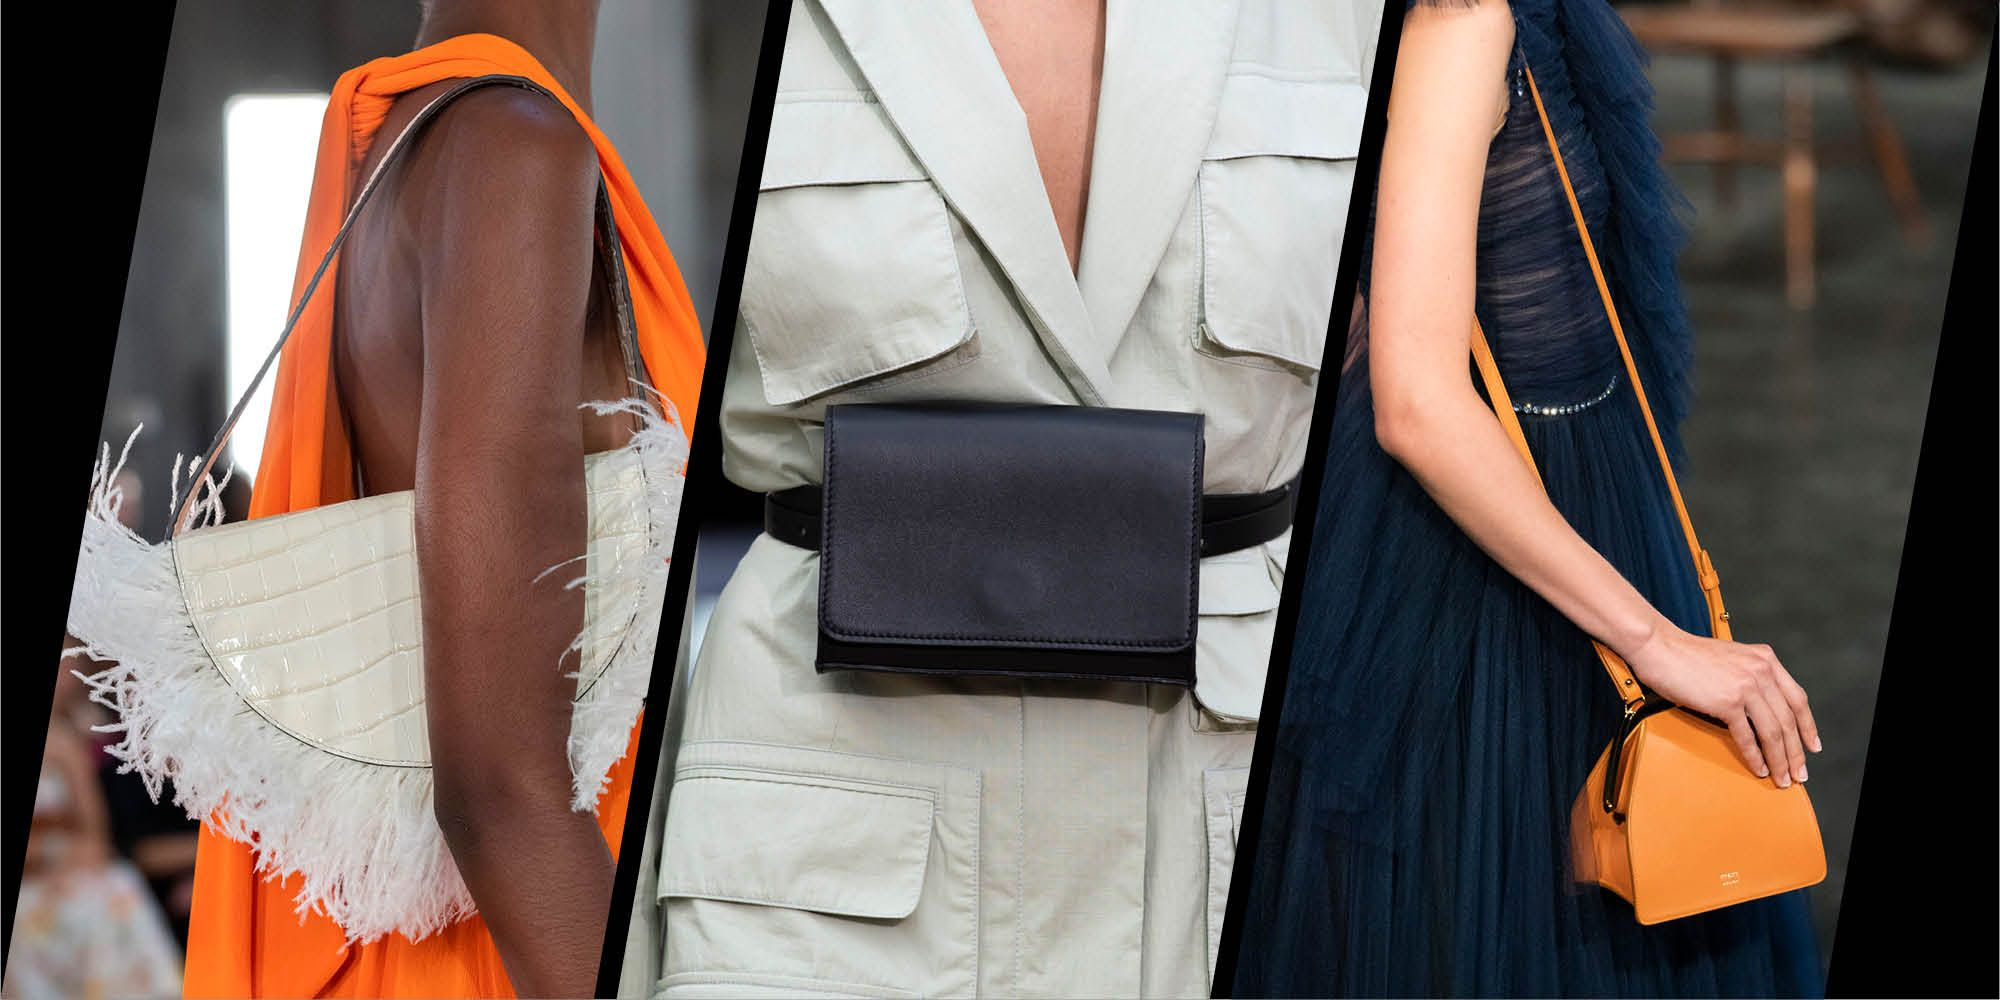 30 of the best bags from New York Fashion Week